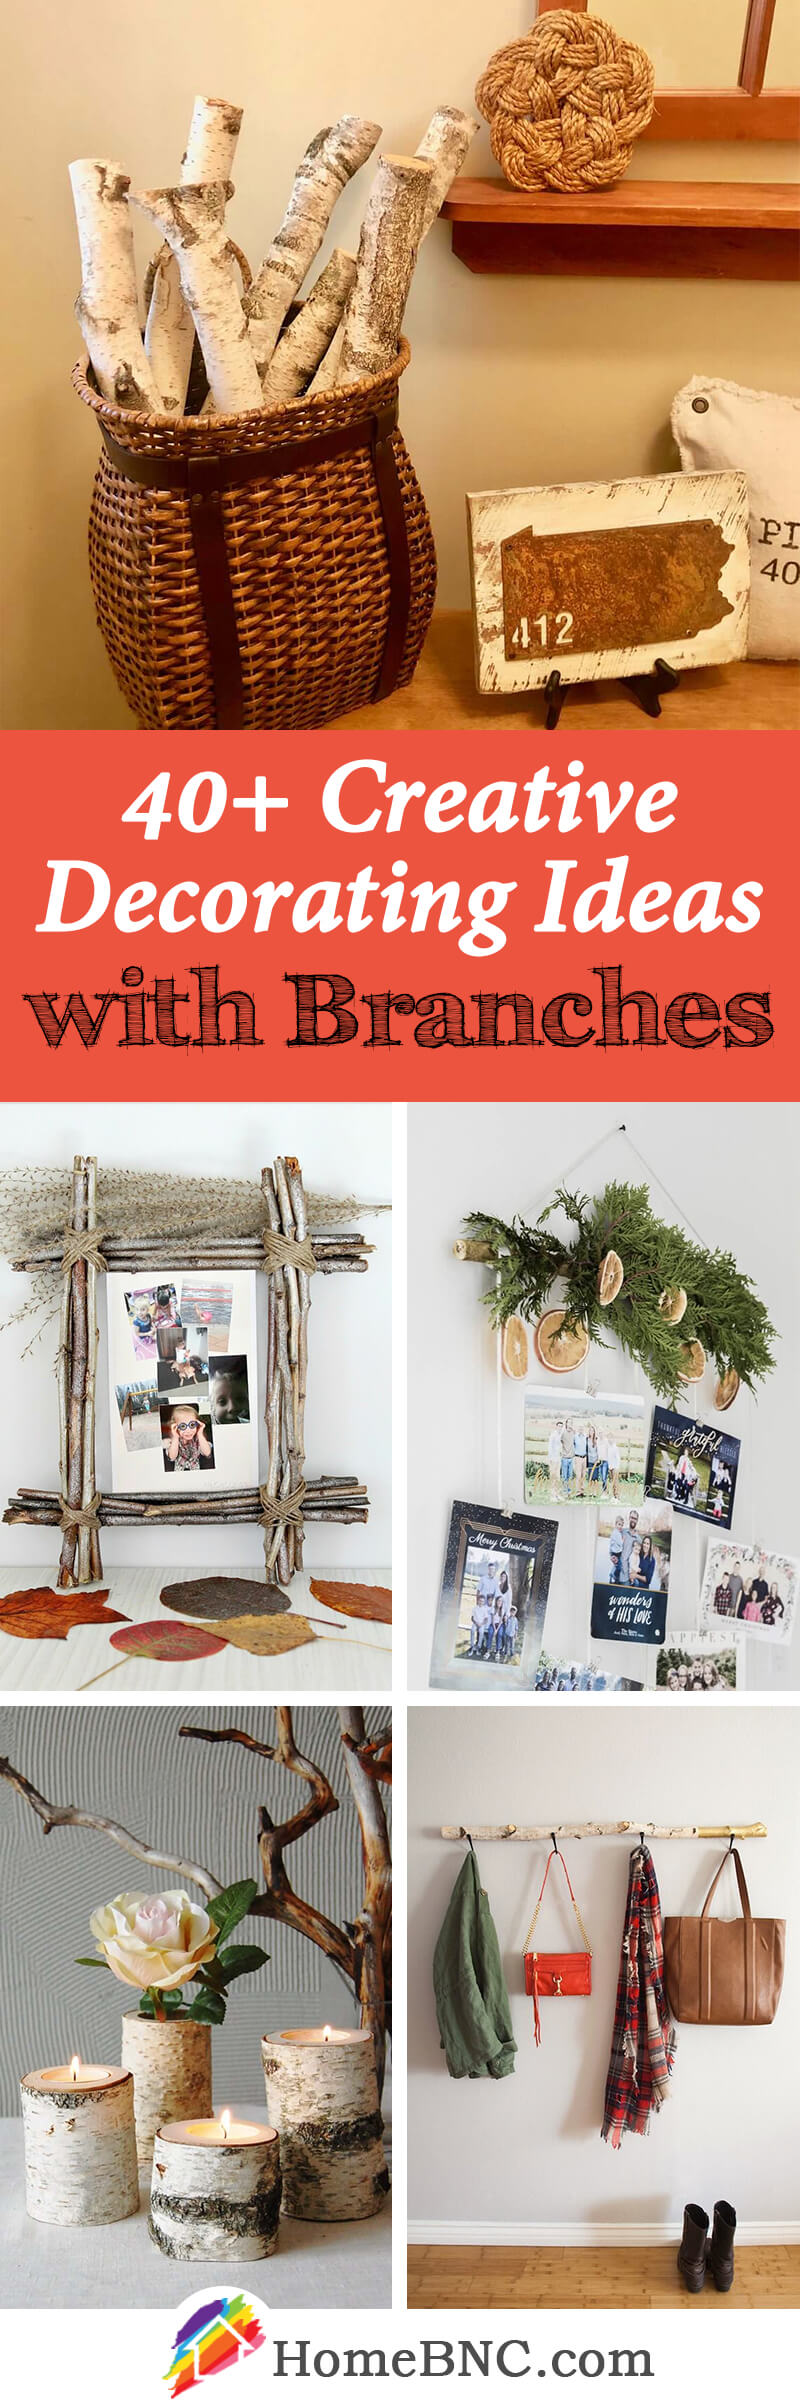 Branches Decorating Designs